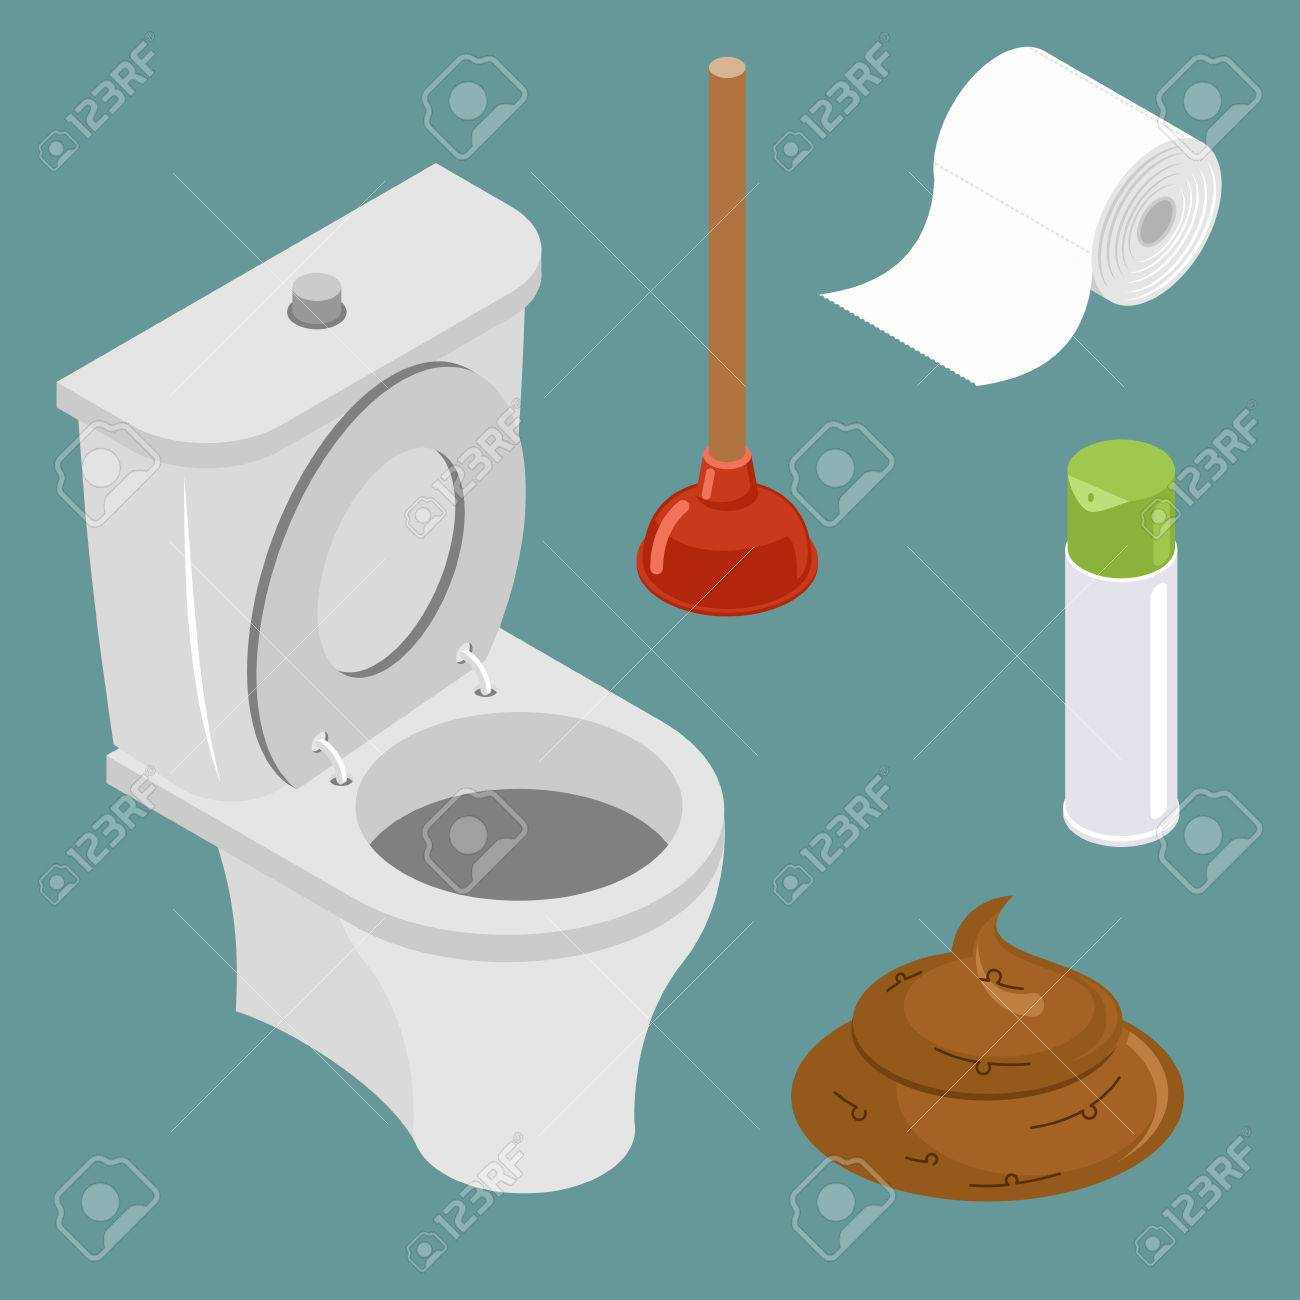 Restroom icon set. White toilet bowl. Spray air freshener. Red rubber plunger. Roll of toilet paper. - 58537986